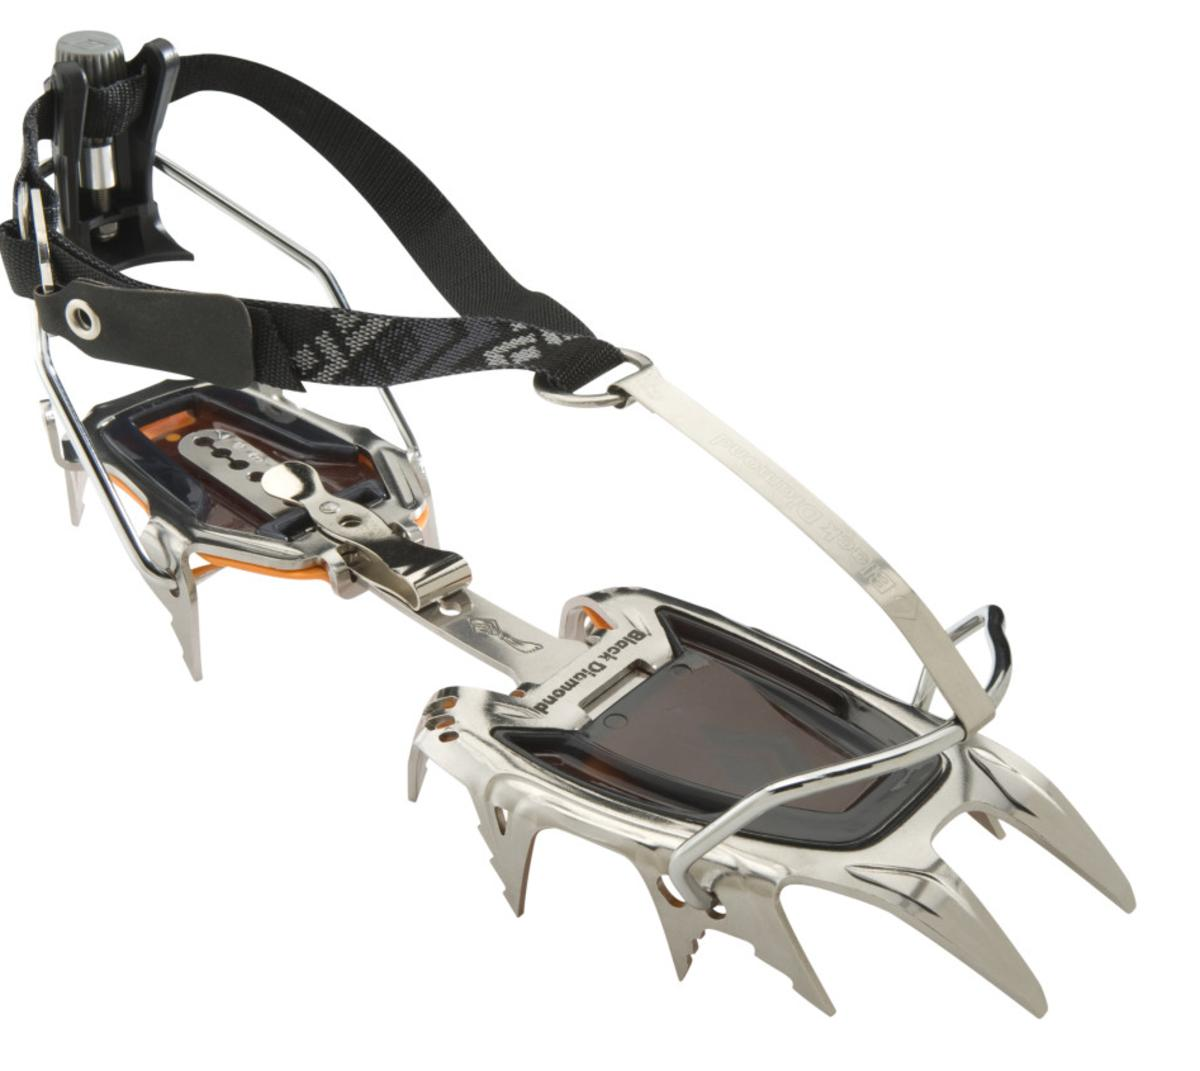 Our best all-around crampon, the Sabretooth features a super-stable yet technical design with a redesigned stainless steel construction that's optimized for added durability.        DESCRIPTION From moderate local ice flows to classic mountaineering routes and technical alpine faces, the Black Diamond Sabretooth Crampon is our best all-around crampon for the spectrum of frozen objectives. The Sabretooth's redesigned stainless steel construction incorporates a strong, yet light design with durable horizontal front points and increased rocker in the front rail to accommodate modern mountain boots. The dual secondary points are optimized for technical precision, while still maintaining a balanced, stable platform on descents and lower angle terrain.  Redesigned stainless steel construction is durable, resists snowballing and won't rust > Versatile horizontal frontpoints and technical secondary points Low-profile micro-adjust heel bail offers precision fit P